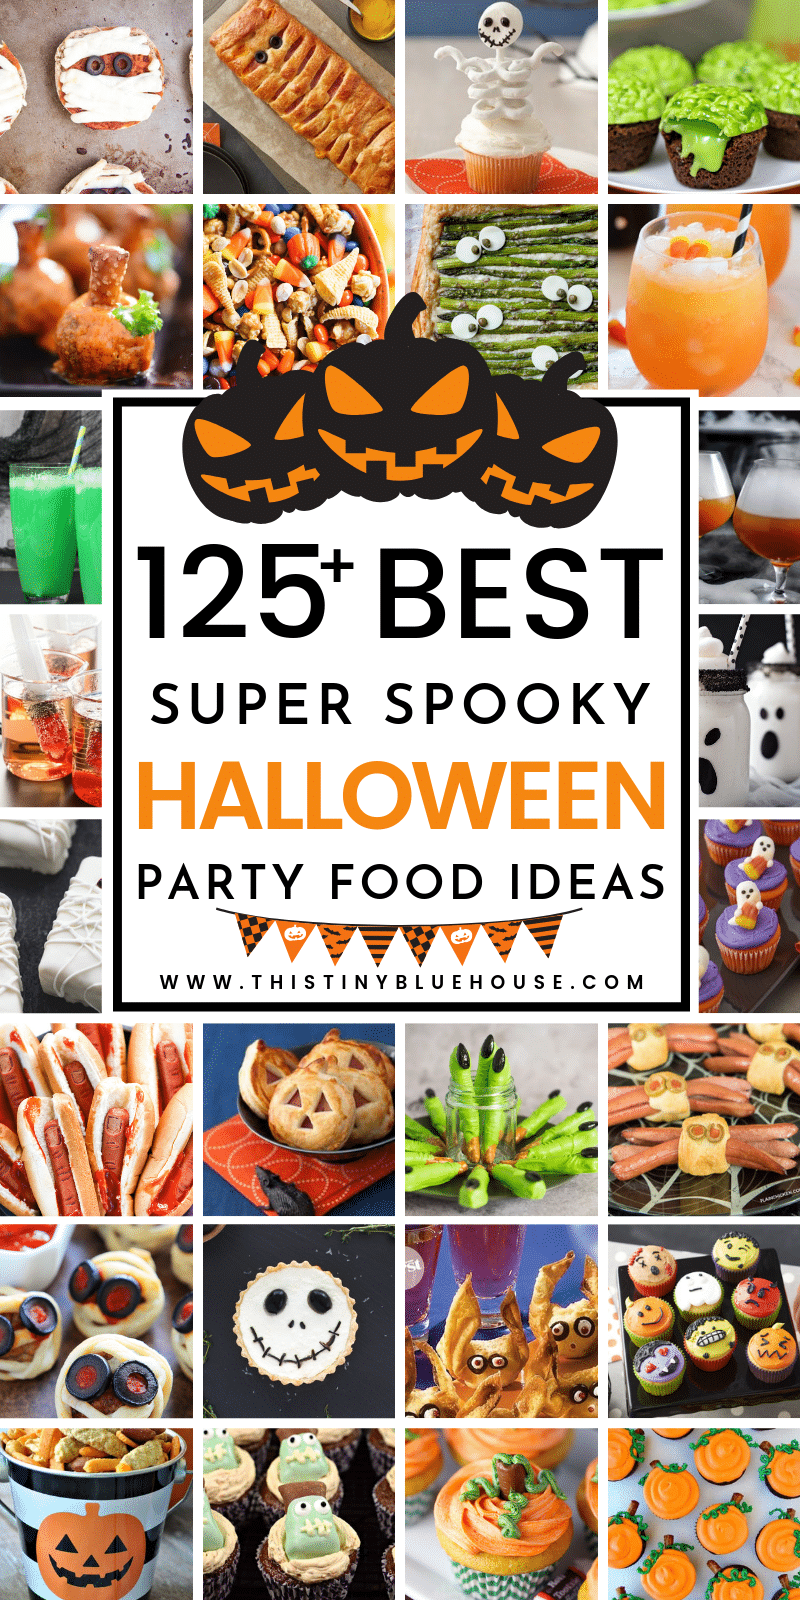 Here are 130 best ultimate ideas for Halloween party food for your super spooky party. From spooktacular savory dishes to totally scary cupcakes and even drinks this ultimate guide to Halloween party food is guaranteed to make your Halloween bash a huge success. #halloweenpartyfoods #halloweenpartyfoodappetizers #halloweenpartyfoodforacrowd #halloweenpartyfoodeasy #halloweenpartyfoodideas #halloweenpartyfooddesserts #halloweenpartyfooddrinks #halloweenpartyfoodbest #Halloweenfoodcreepy #halloweenfoodpotluck